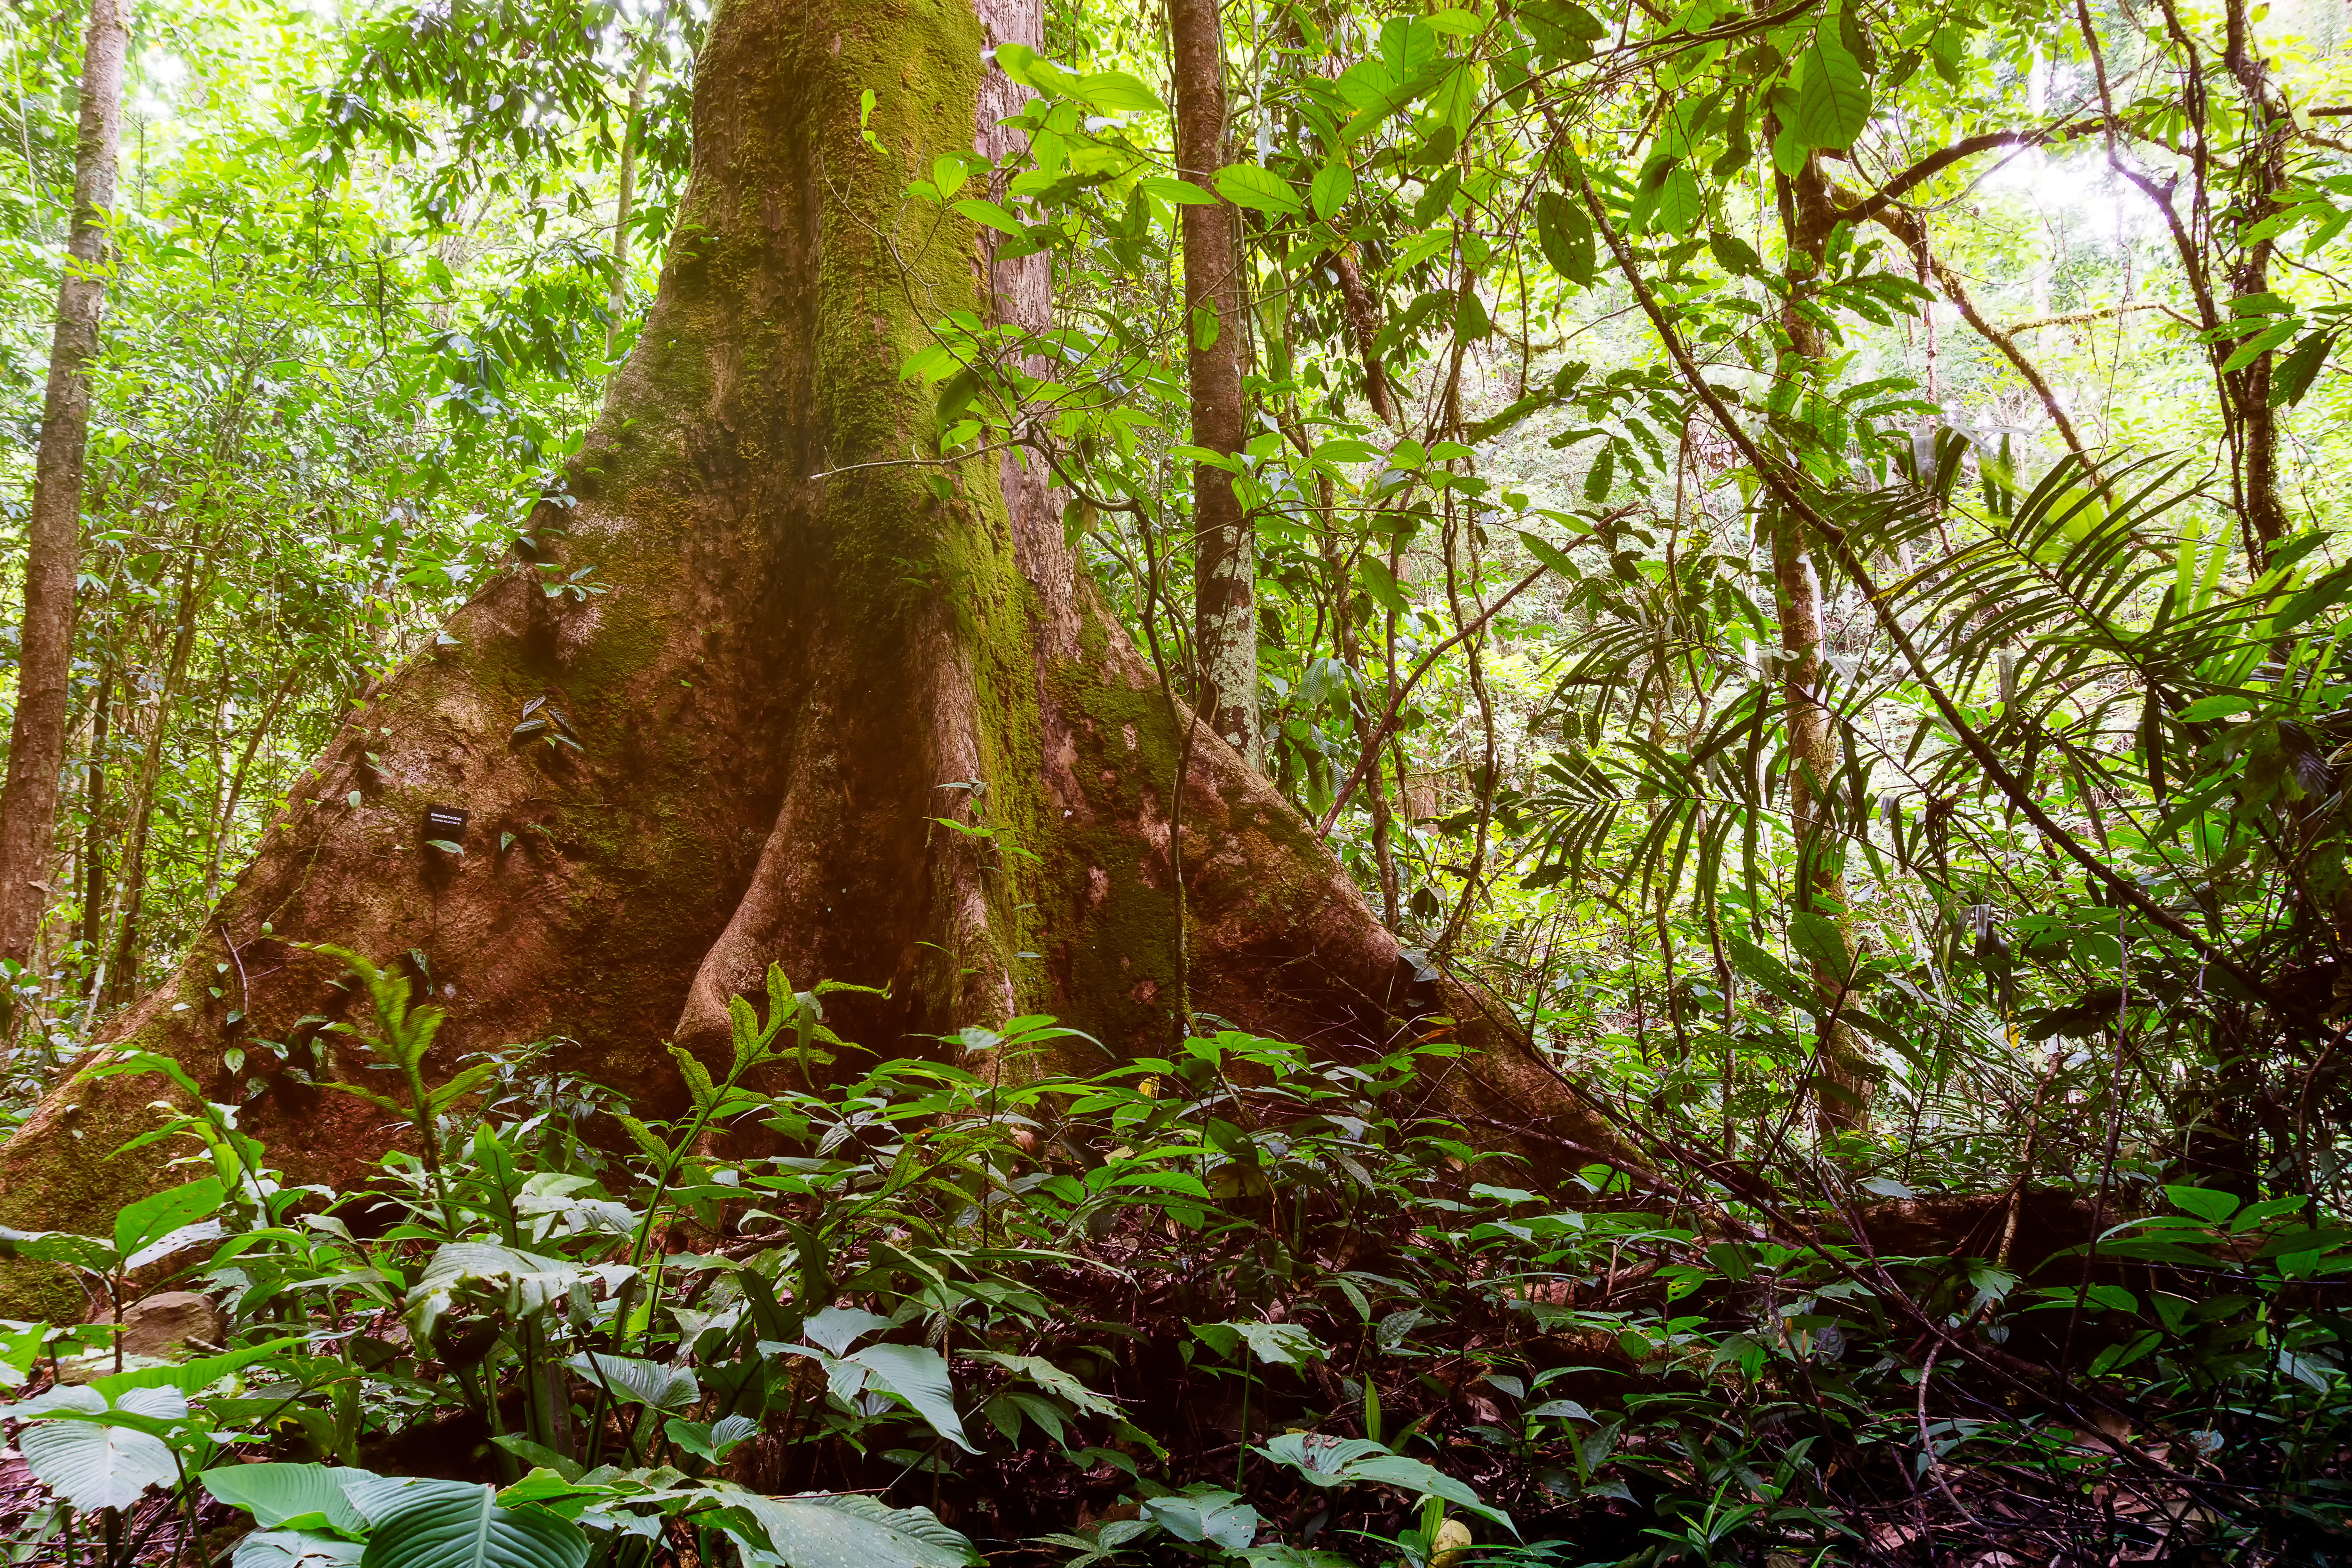 What Is The Structure Of The Tropical Rainforest